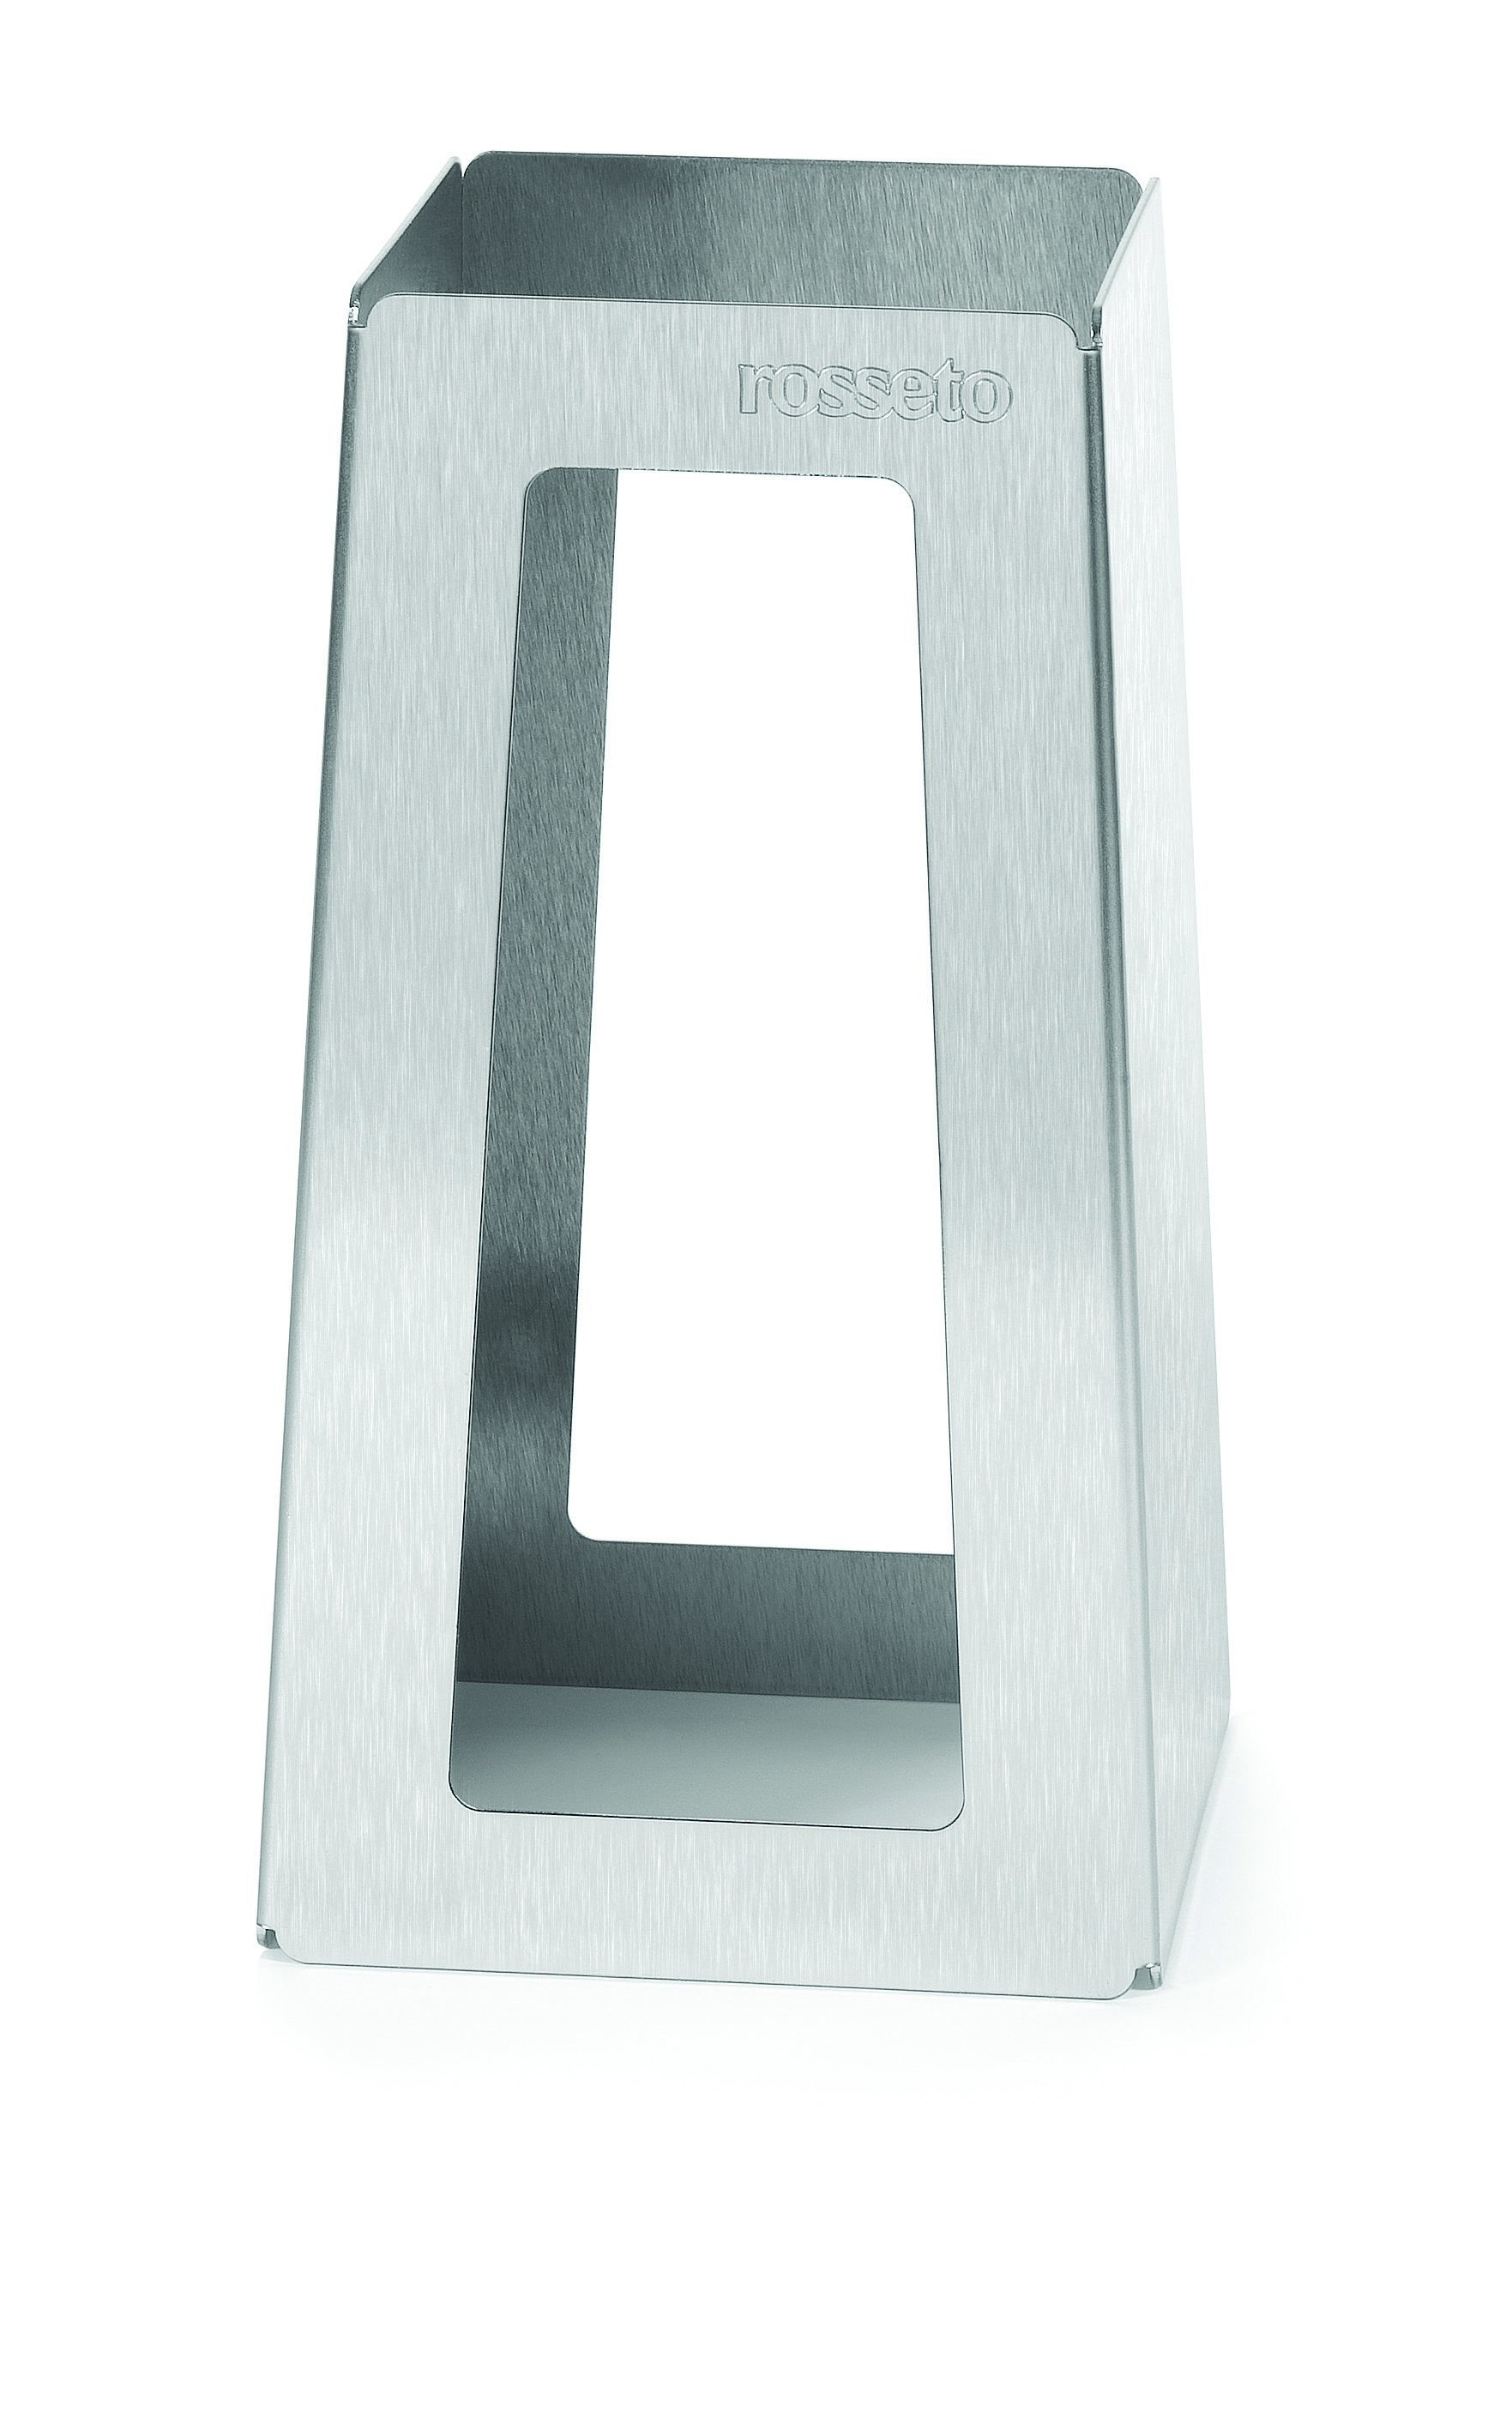 "Rosseto SM151 Stainless Steel Brushed Finish- Pyramid Riser 5"" x 5"" x 10""H"